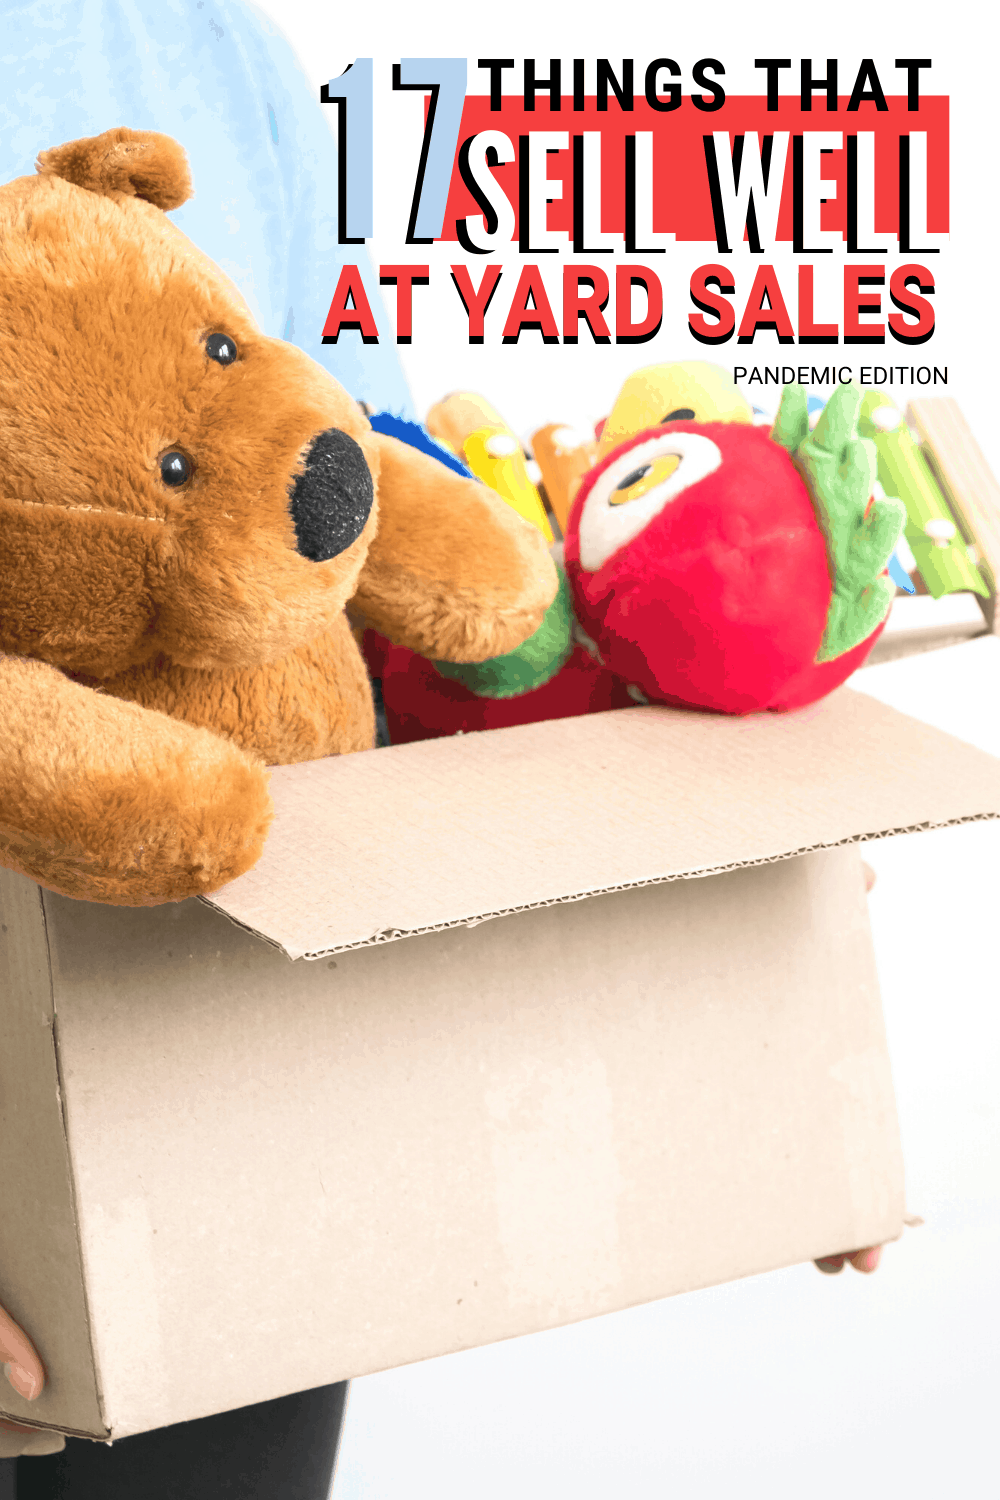 Yard sale season is here and if you want to find things that sell well at yard sales then you need to check out this list and make money for sure. #yardsale #howto #makemoney via @mystayathome